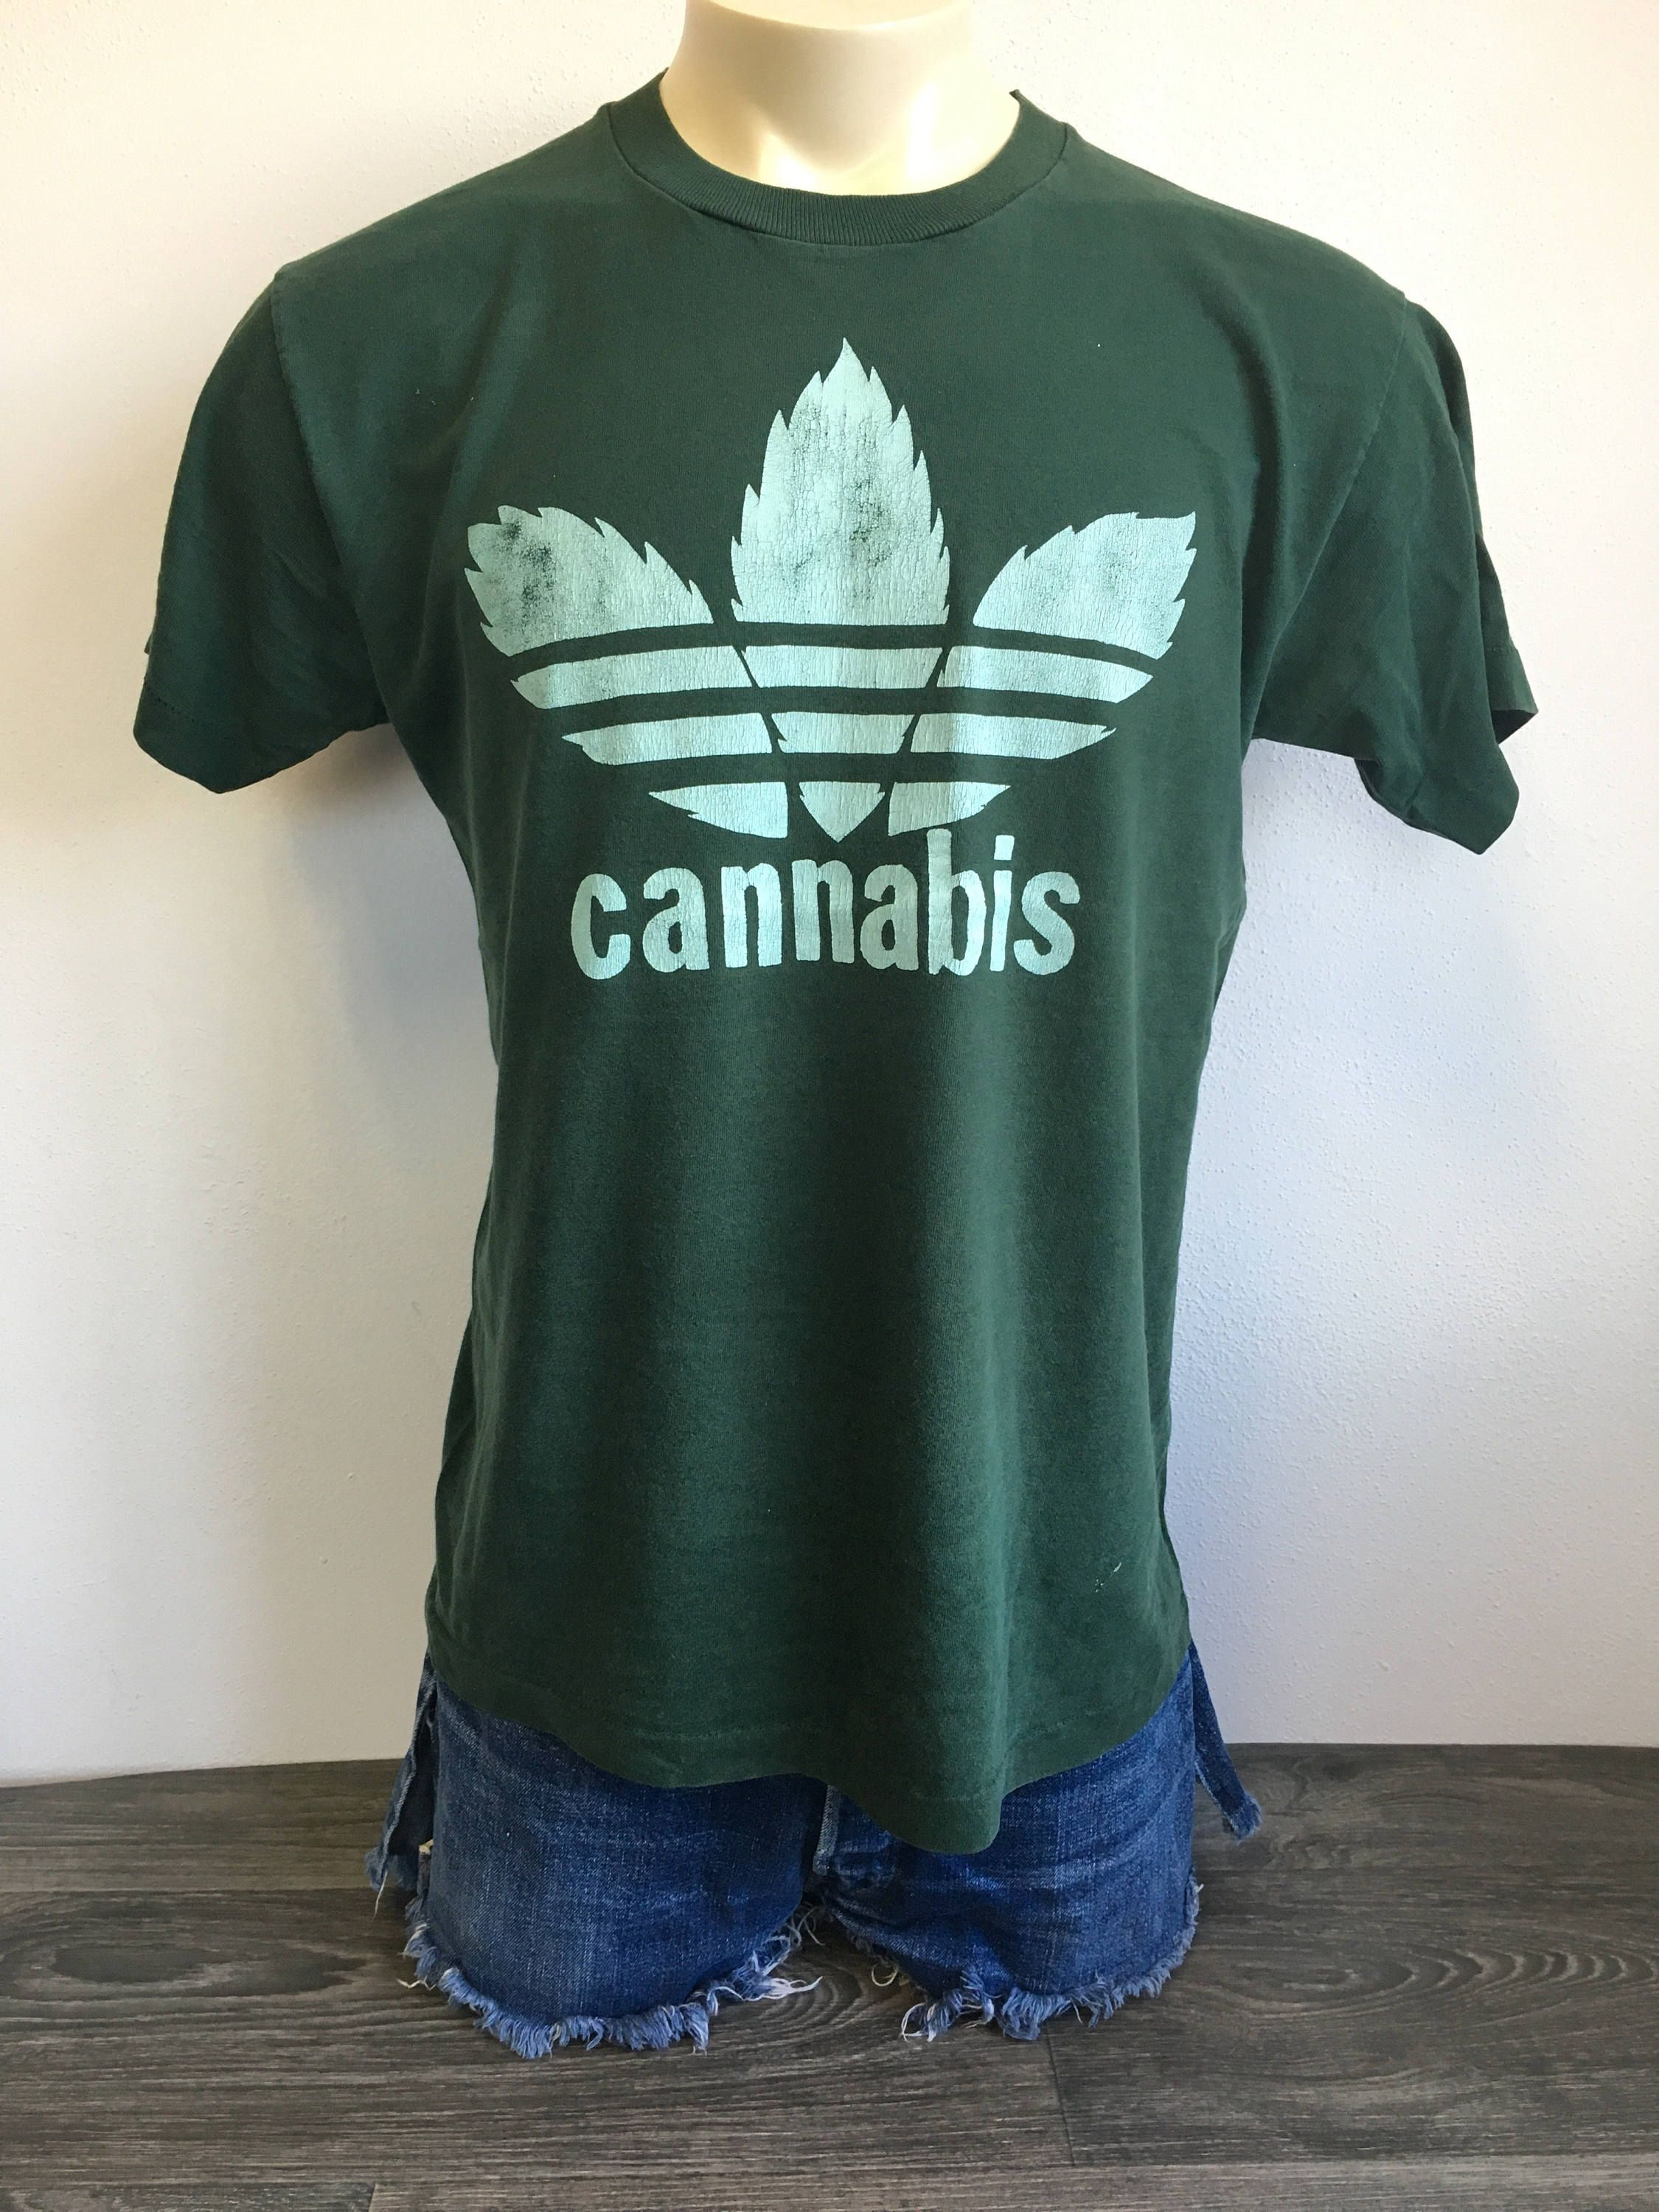 57cbc3748 Cannabis Adidas Parody Shirt 90s Vintage RARE Funny Joint Pot Drug Leafs  Marijuana Weed Tshirt Trefoil Reefer Large Tee by sweetVTGtshirt on Etsy   weed ...